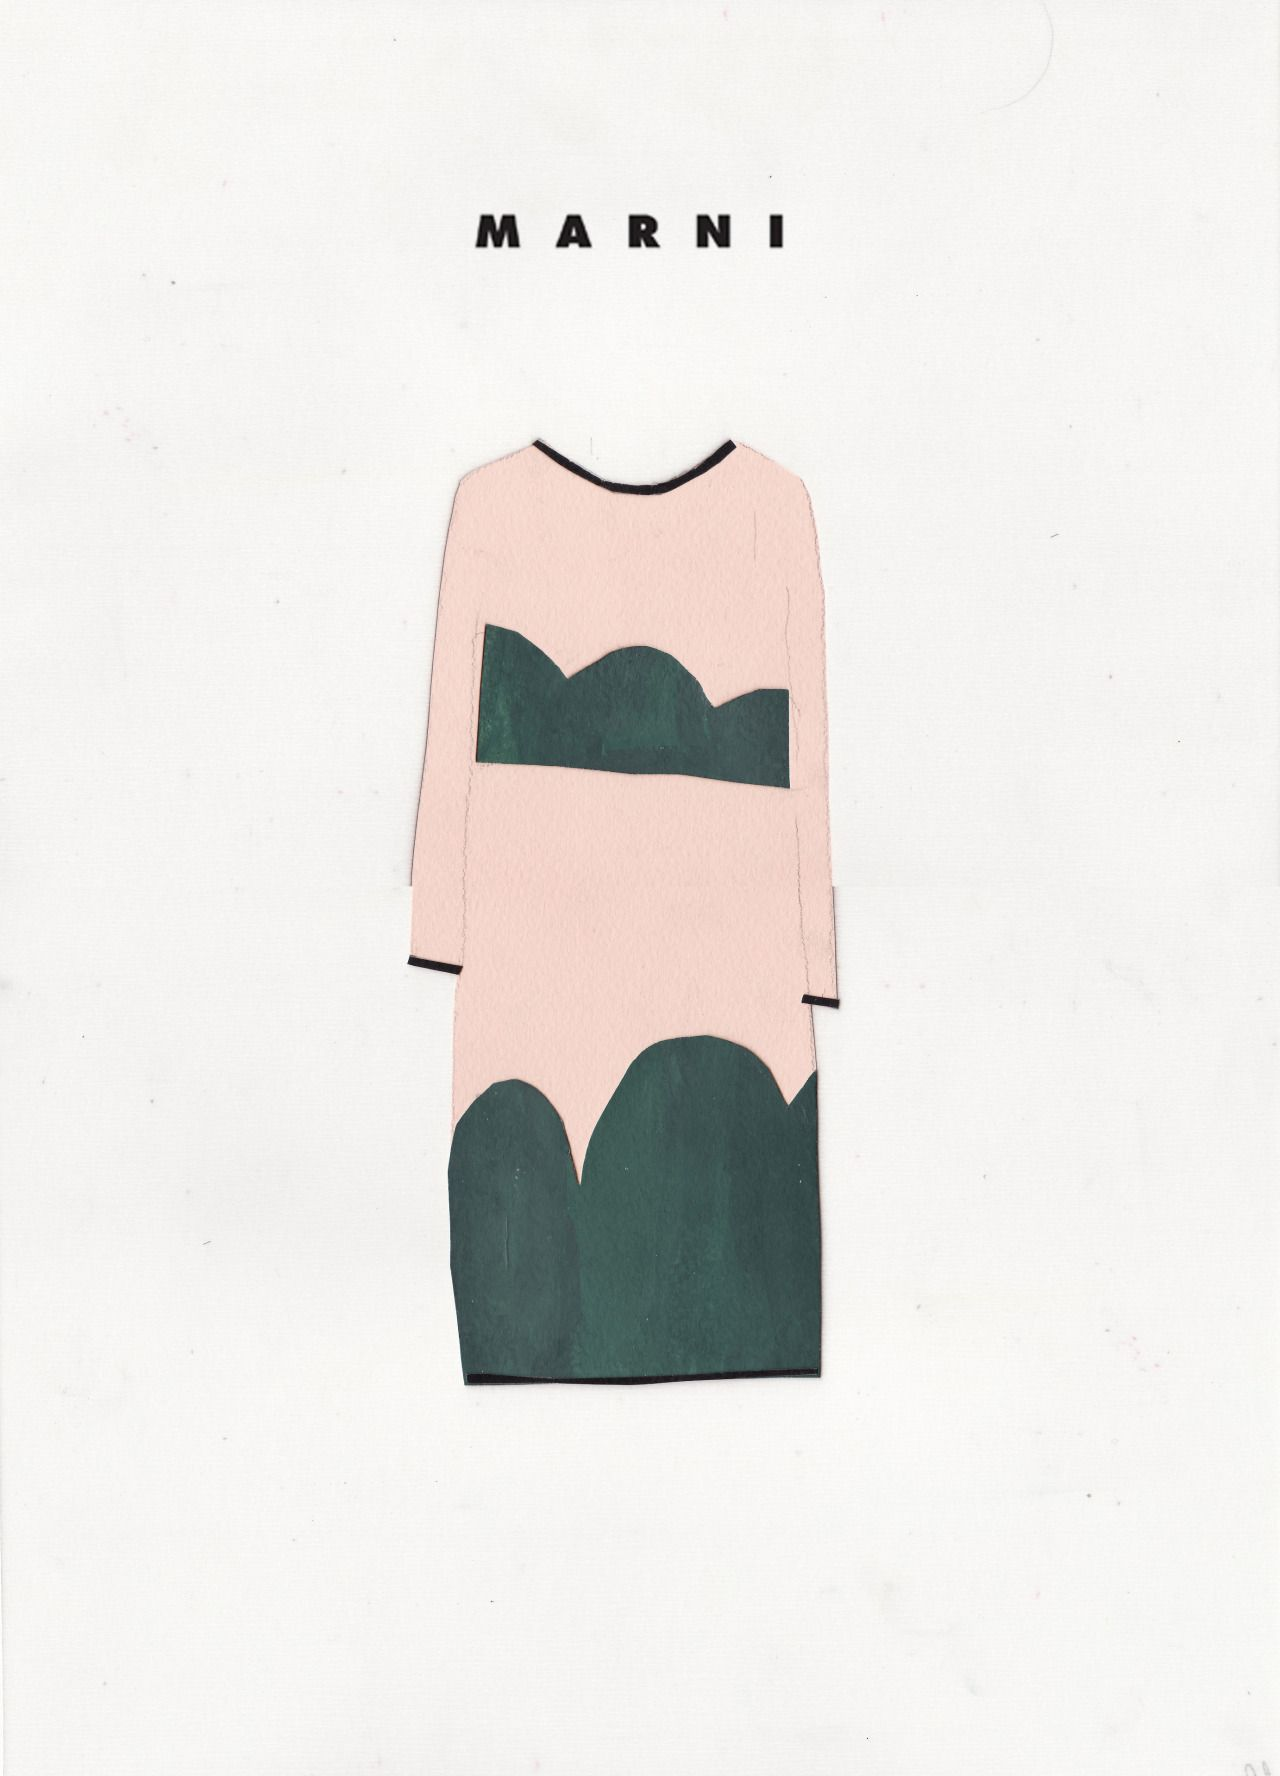 Marni Autumnwinter 13 14 Fashion Fashion Design Fashion Illustration